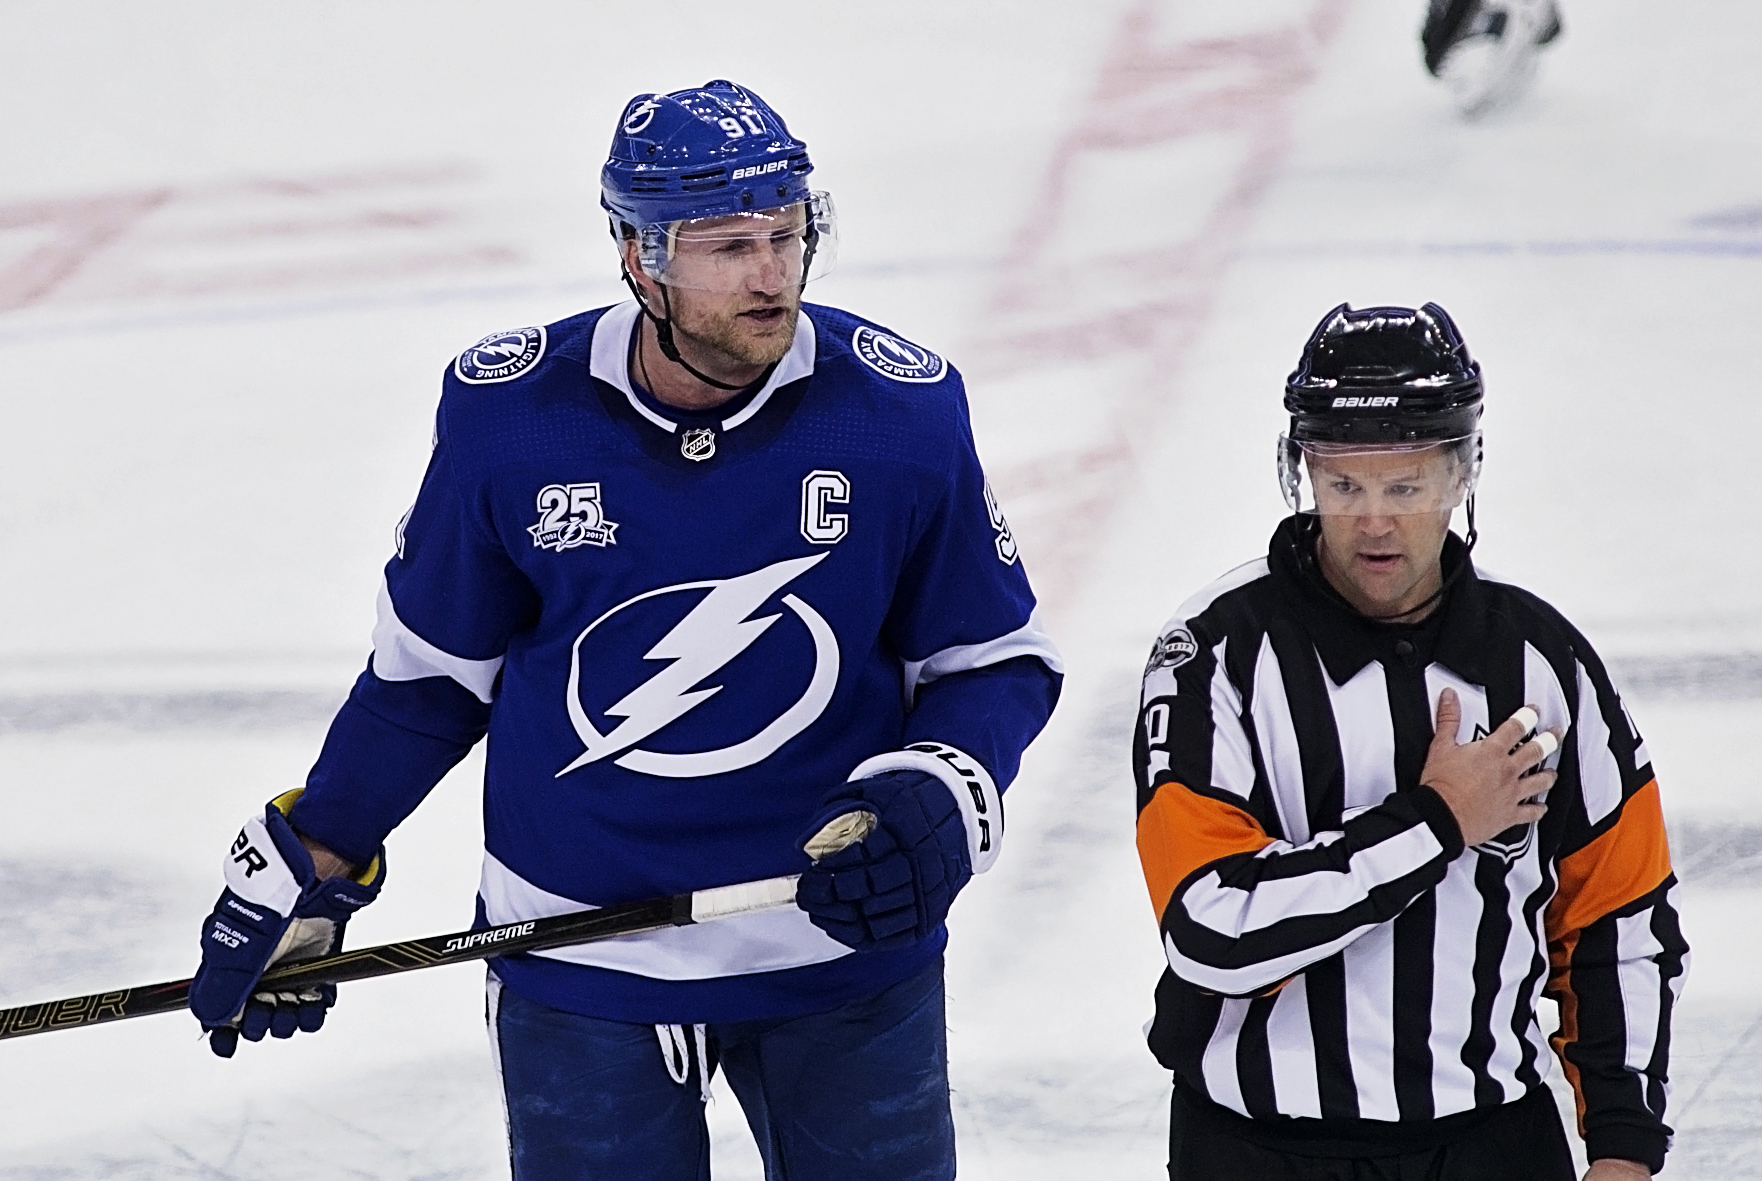 Stamkos argues that a disallowed goal should count./CARMEN MANDATO